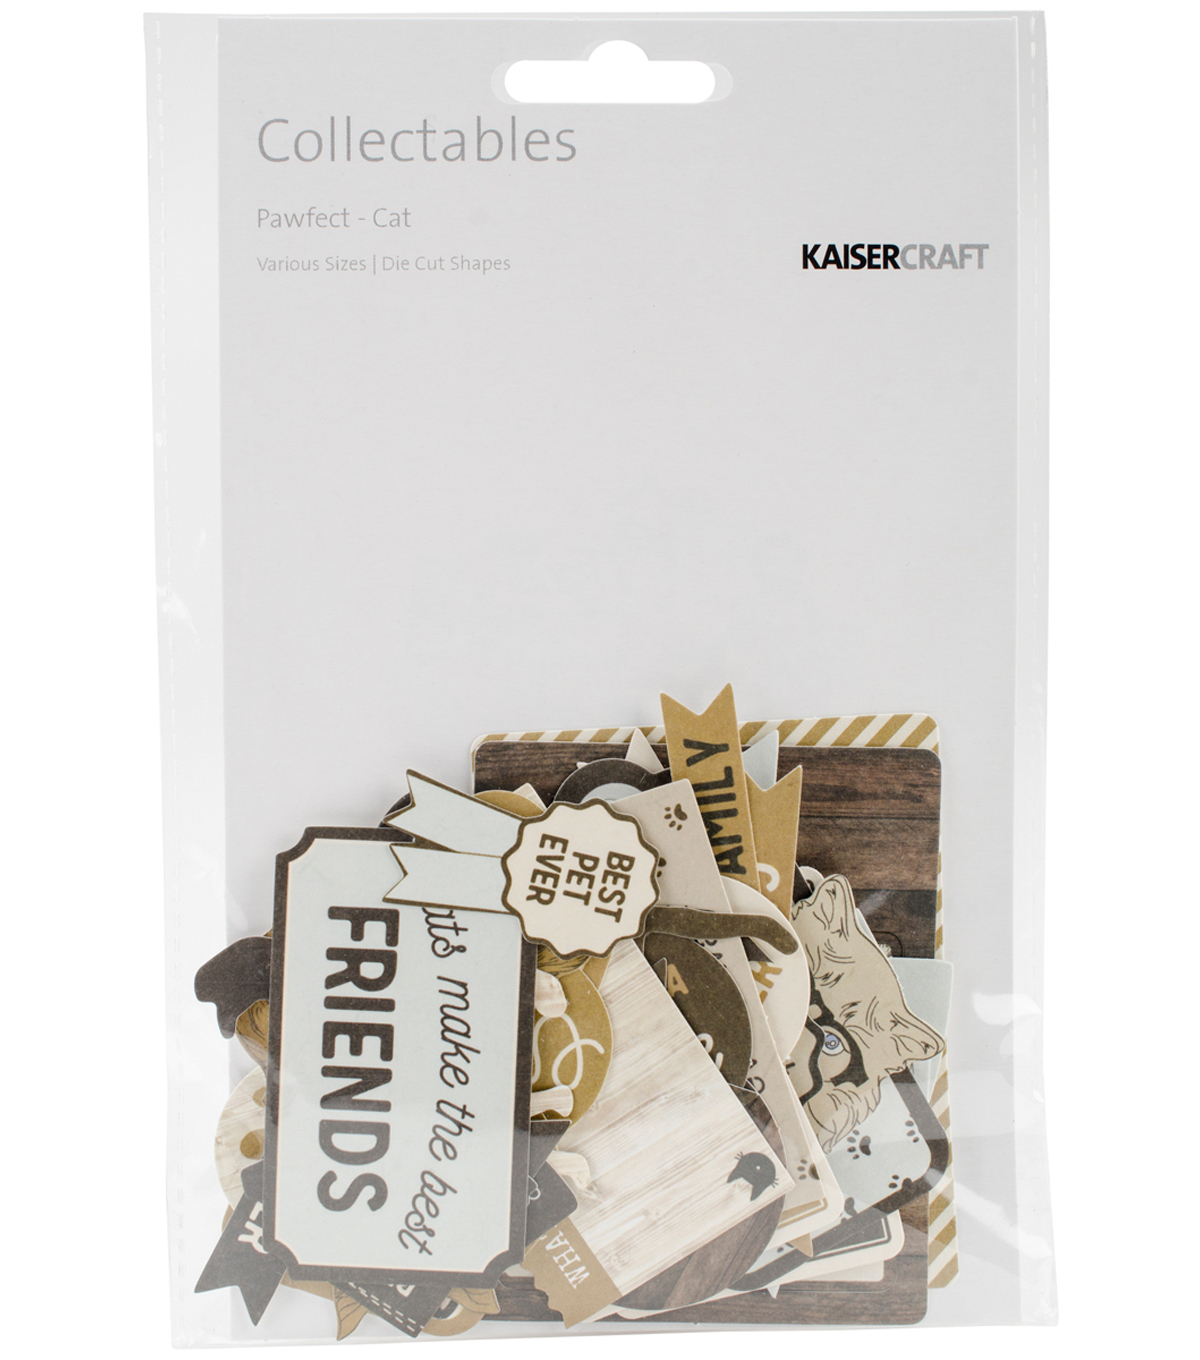 Kaisercraft Pawfect Collectables Cardstock Die-Cuts-Cat